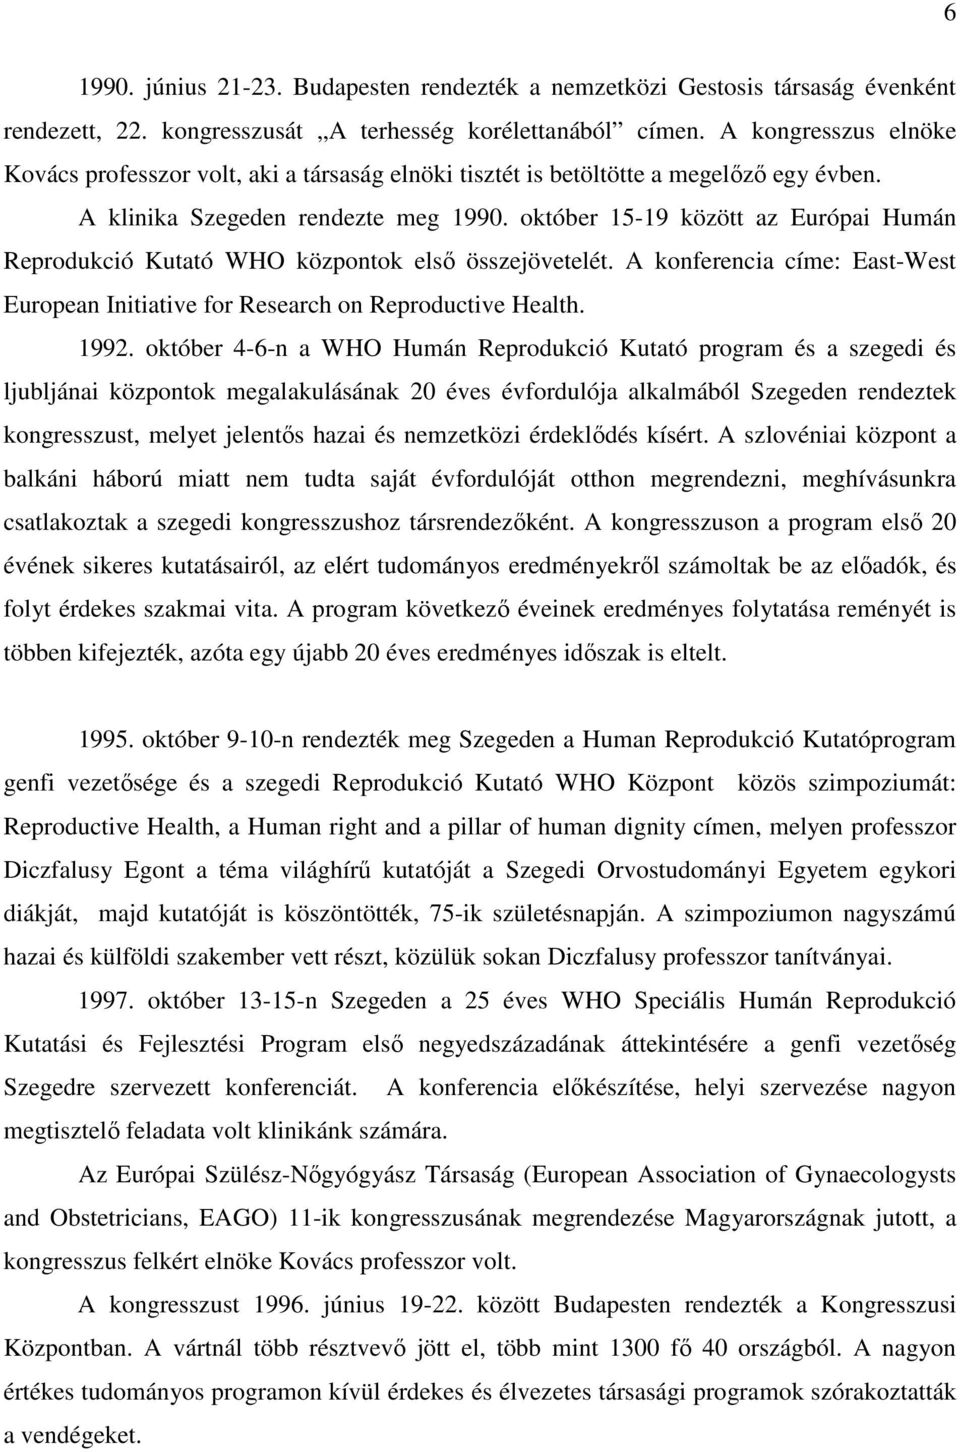 október 15-19 között az Európai Humán Reprodukció Kutató WHO központok első összejövetelét. A konferencia címe: East-West European Initiative for Research on Reproductive Health. 1992.